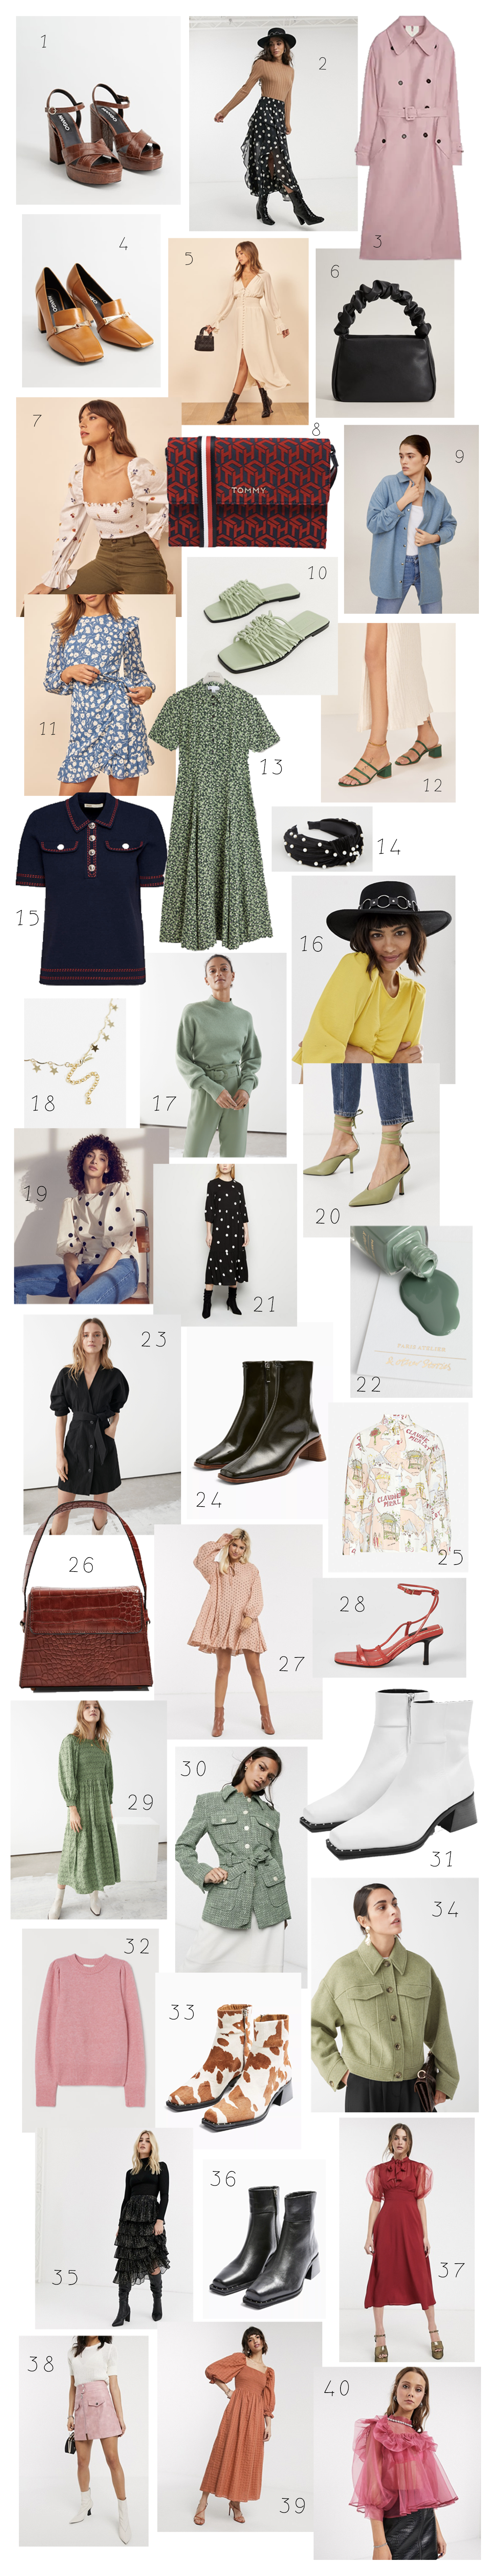 Alright-Sunshine-Currently-Coveting-Top-40-Fashion-Wishlist